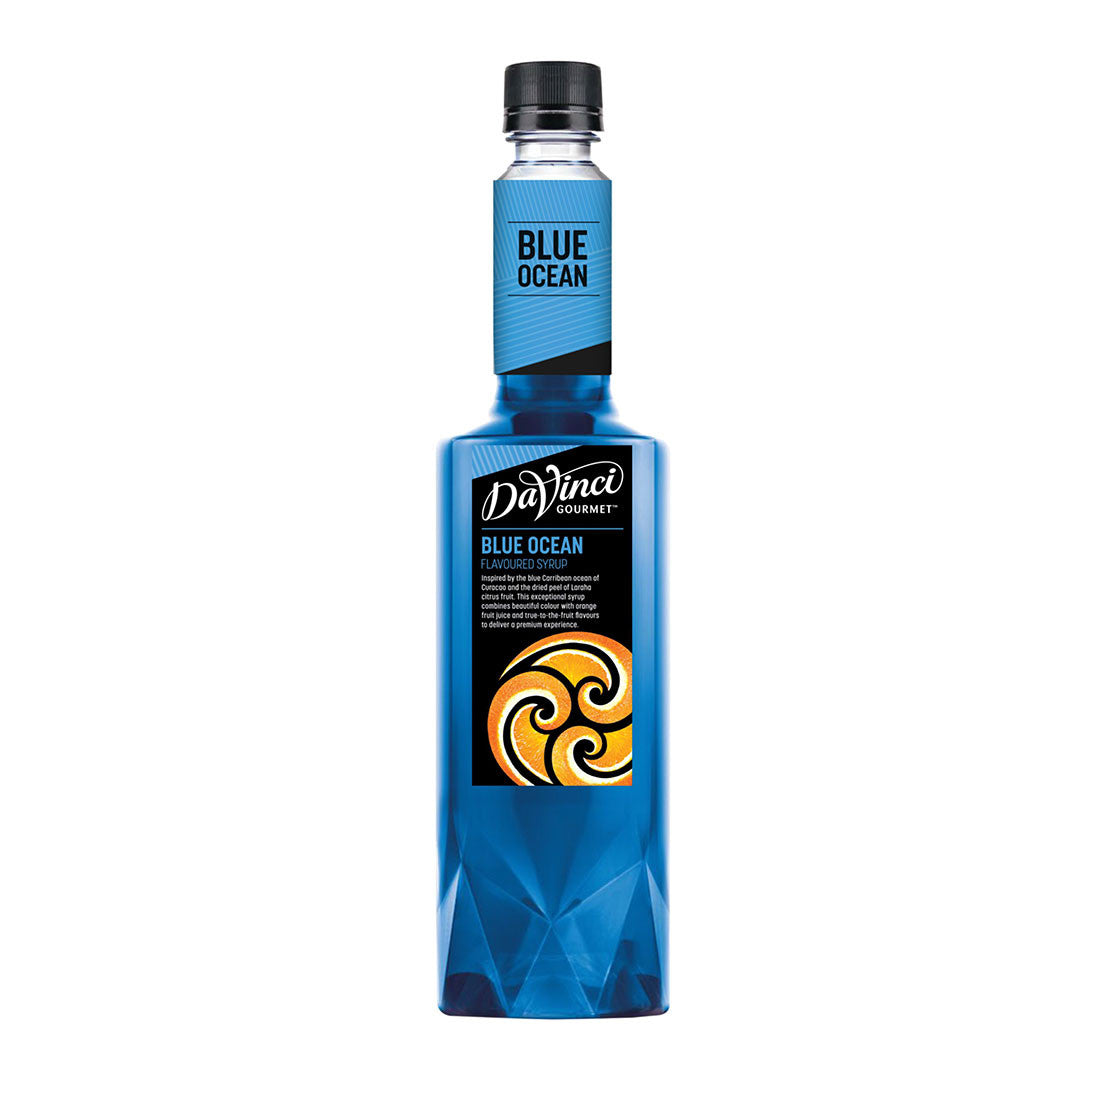 Davinci Gourmet  Blue Ocean -750ml Syrups - Drinkka Alcohol Delivery Best Whiskey Wine Gin Beer Vodkas and more for Parties in Makati BGC Fort and Manila | Bevtools Bar and Beverage Tools